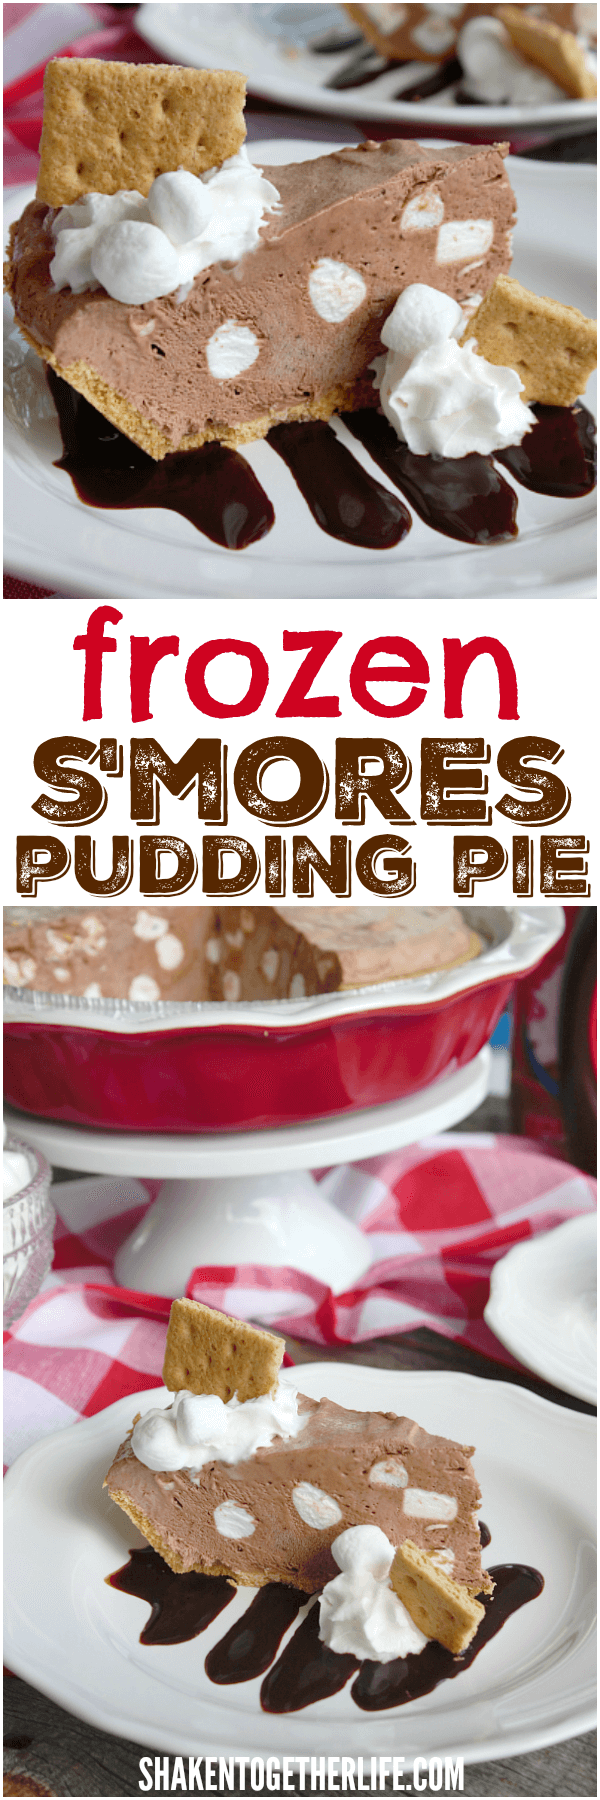 S'mores get a no bake, no fire makeover with our cool creamy Frozen S'mores Pudding Pie!